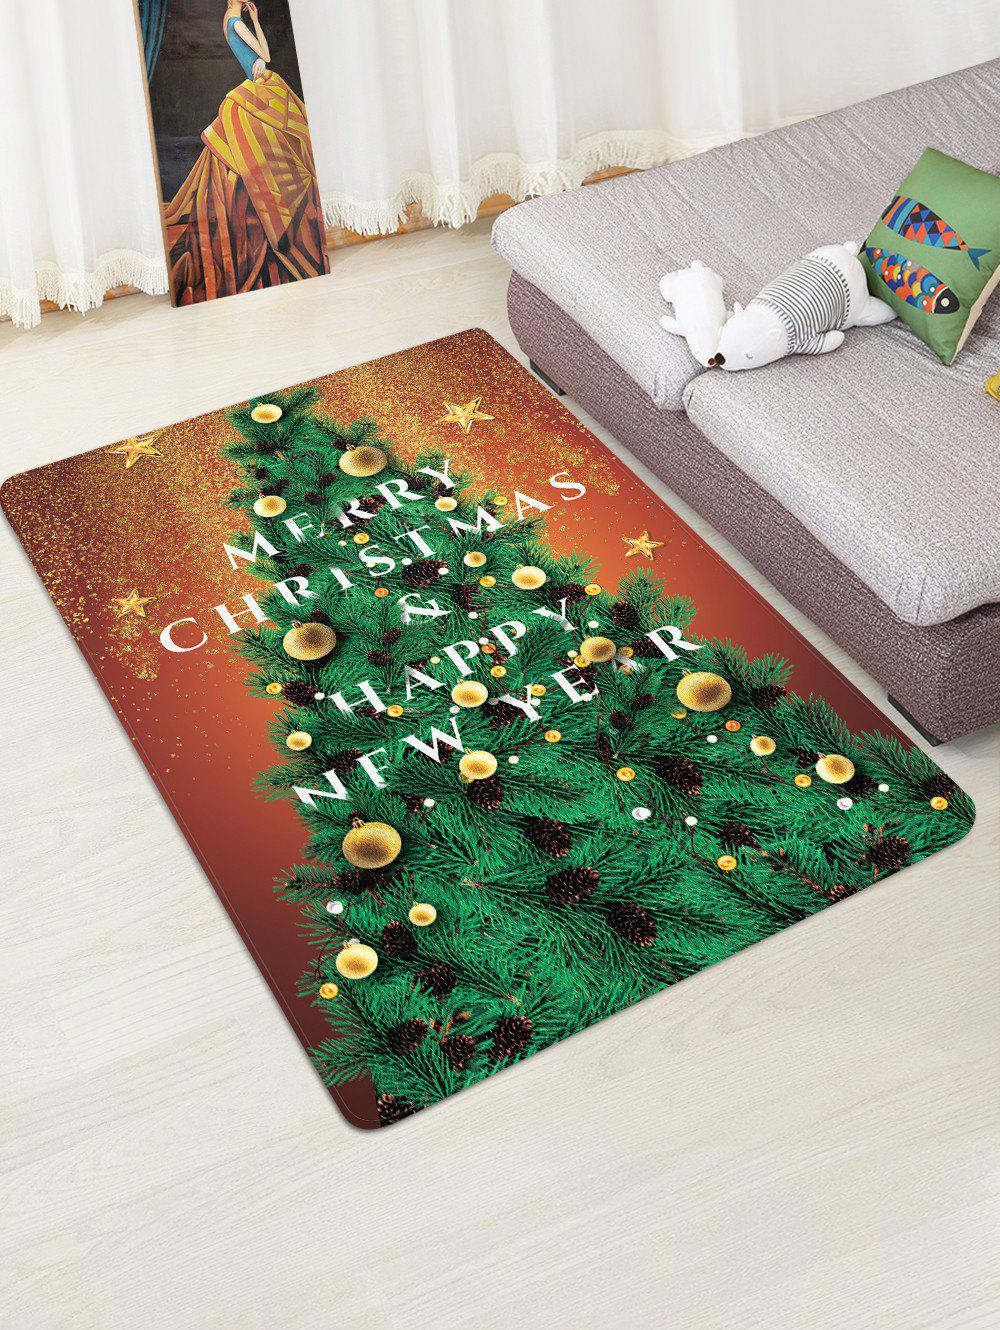 Unique Christmas Tree Star Print Floor Rug